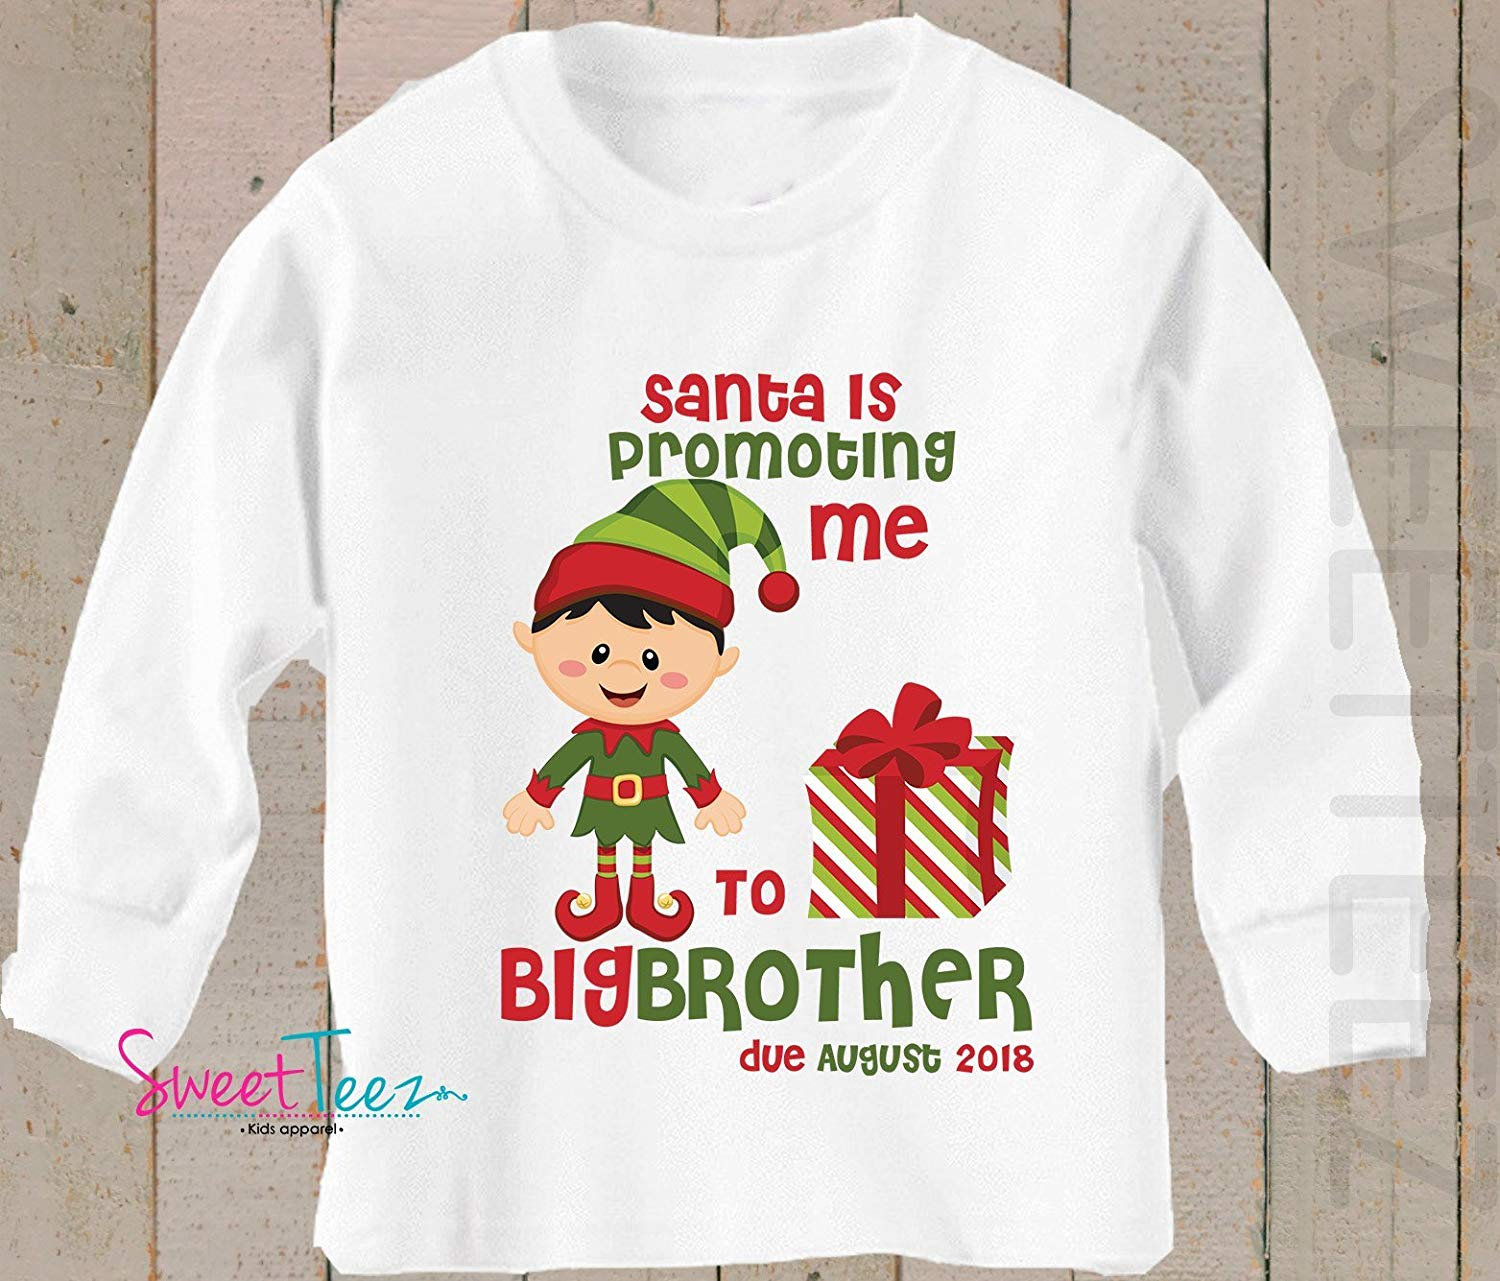 c1acbb1bf270 Get Quotations · Big Brother Shirt Santa is Promoting me to Big Brother  Shirt Long Sleeve Christmas Pregnancy Announcement